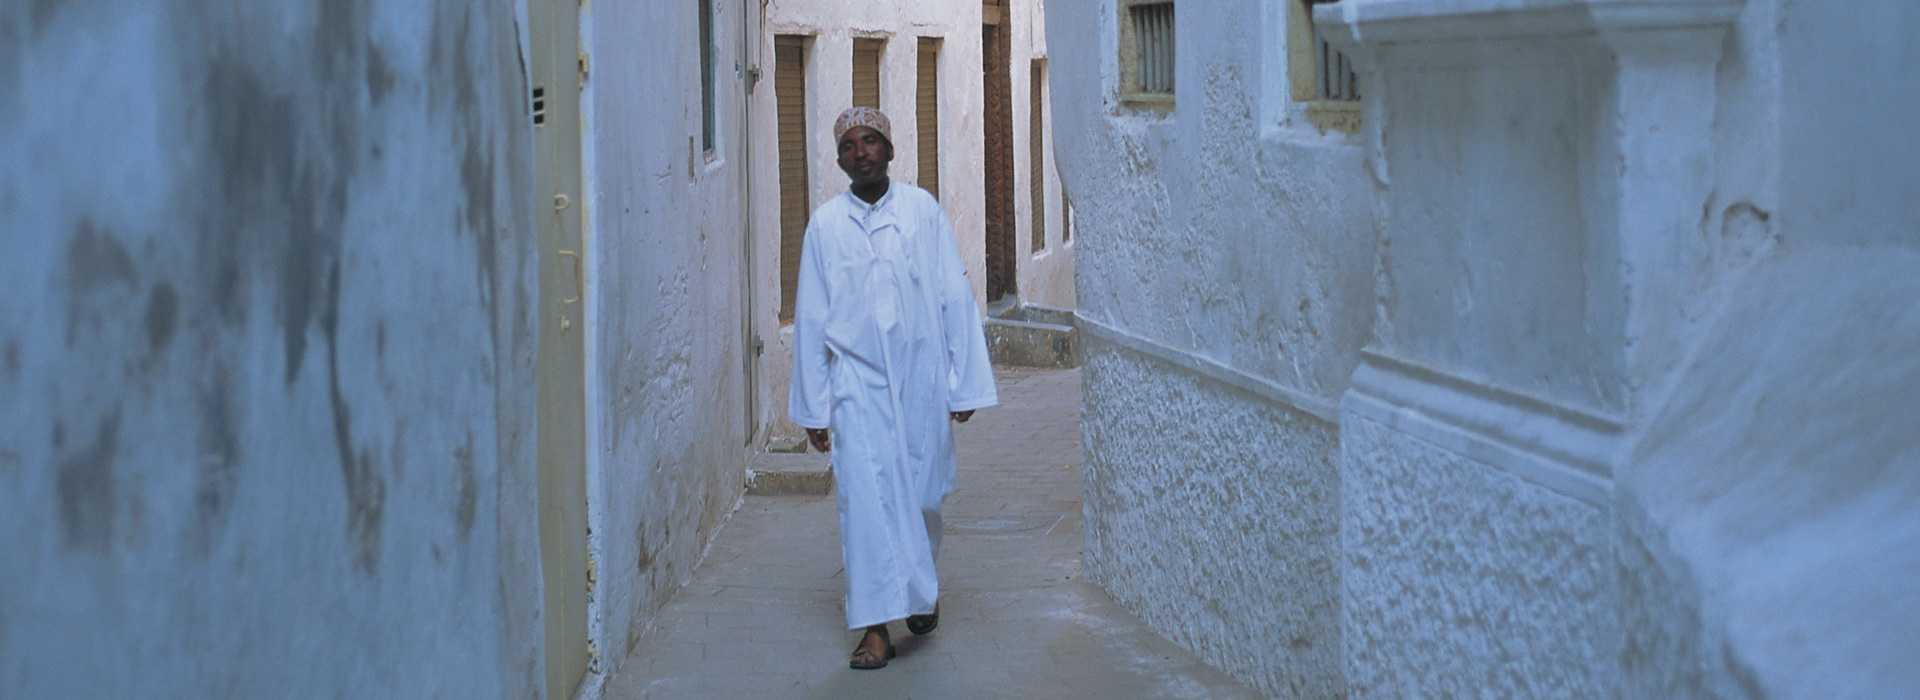 Man Walking Through The Streets Of Stone Town